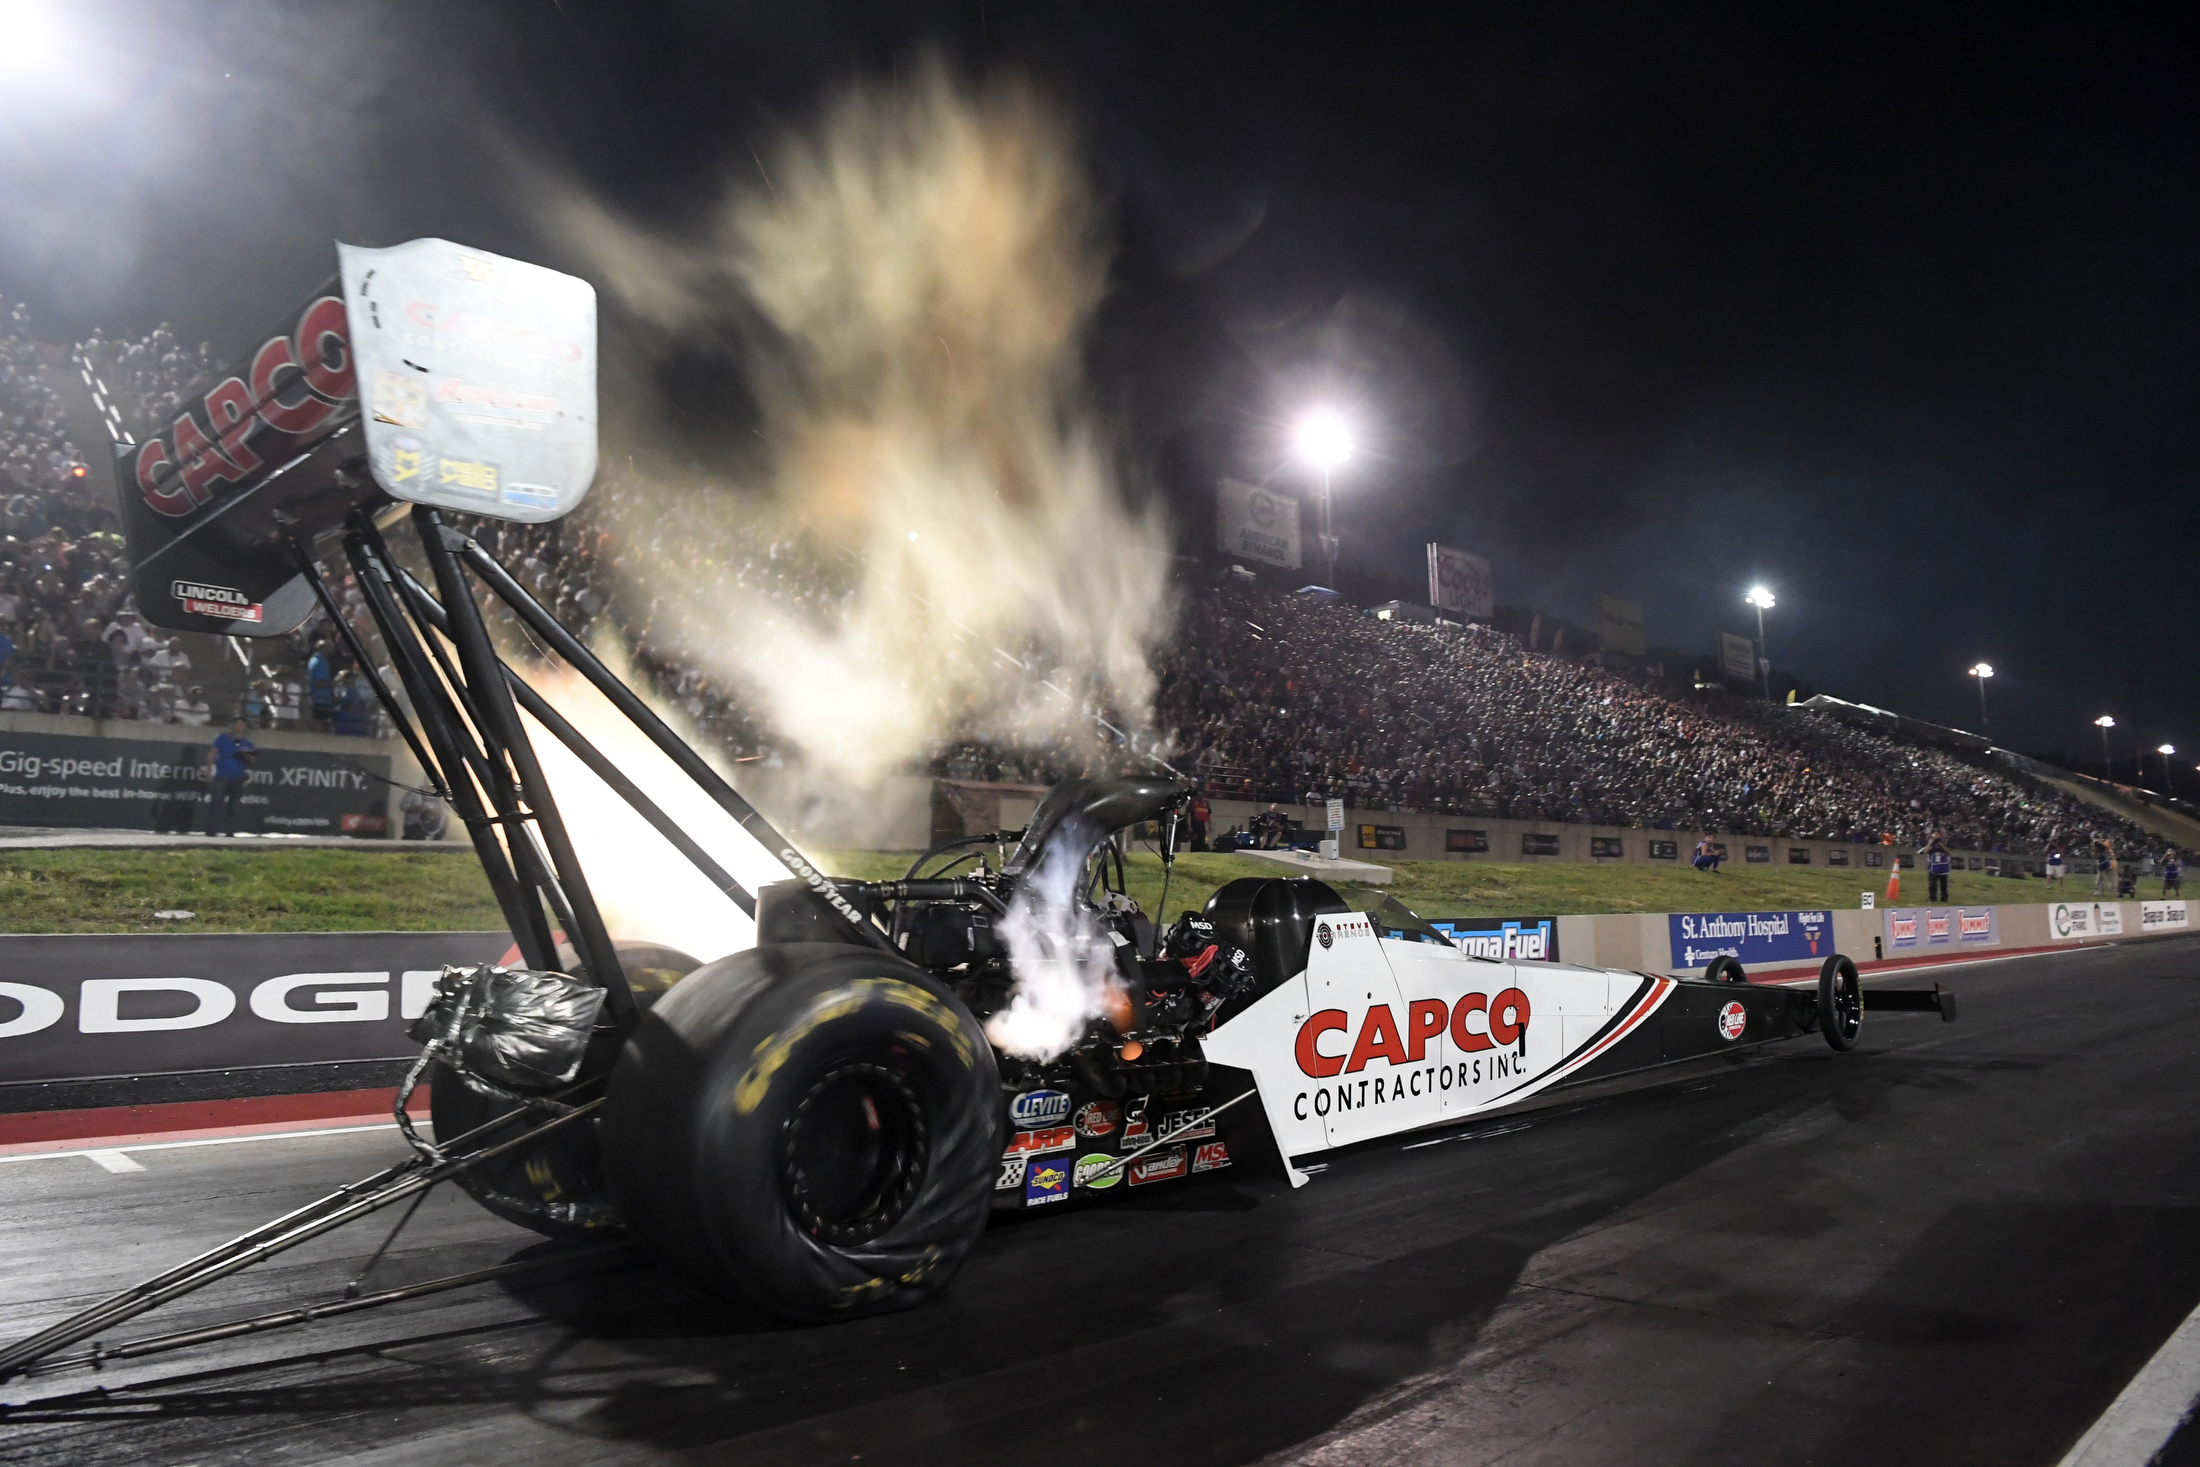 Top Fuel Dragster pilot Steve Torrence racing on Friday at the Dodge Mile-High Nationals presented by Pennzoil